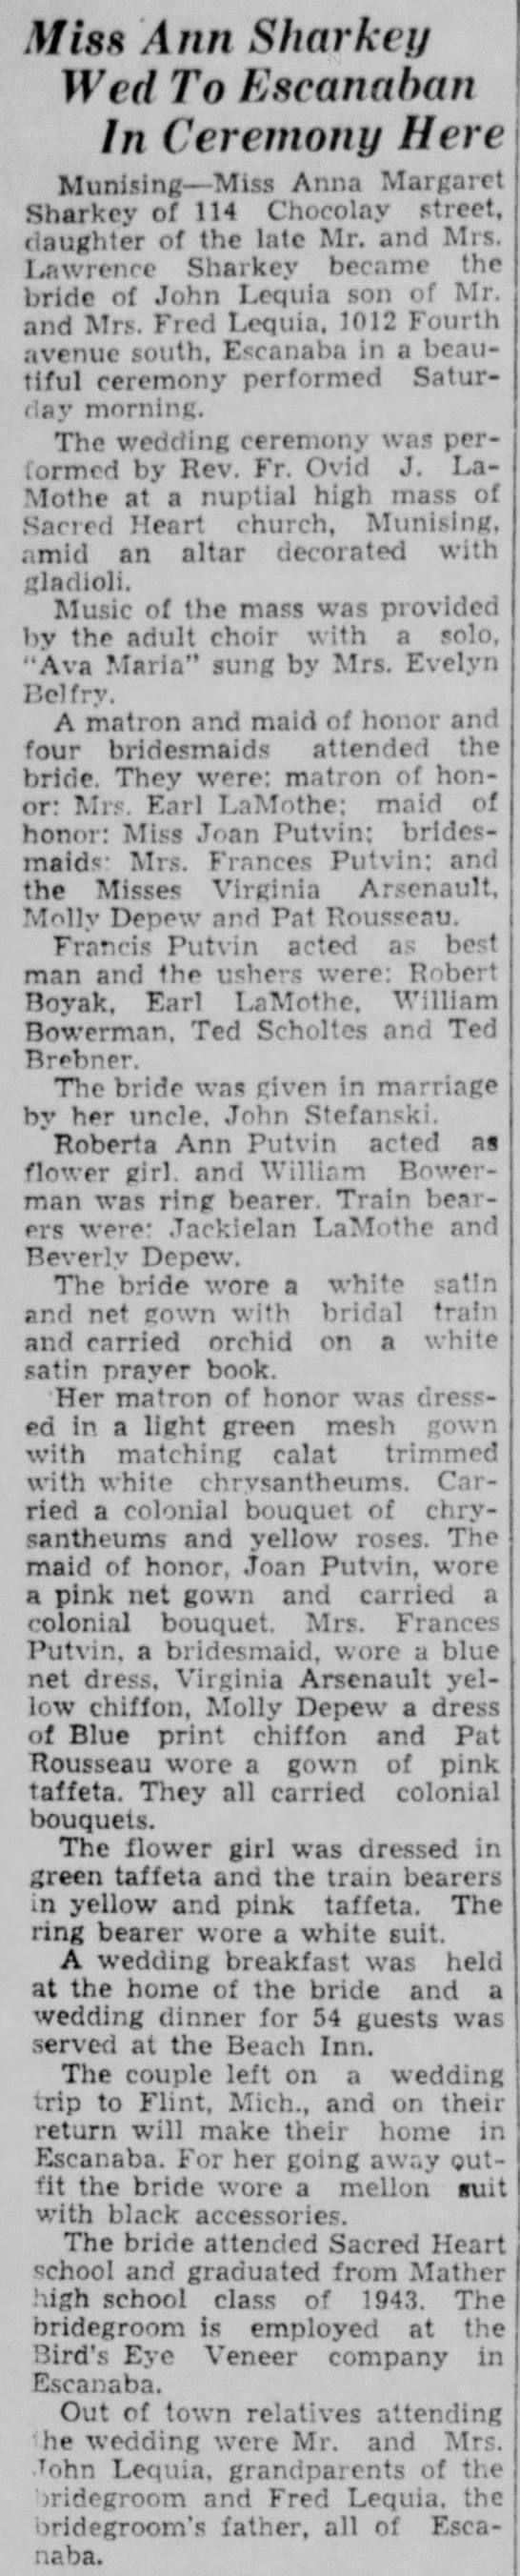 Lequia wedding Sept 1946